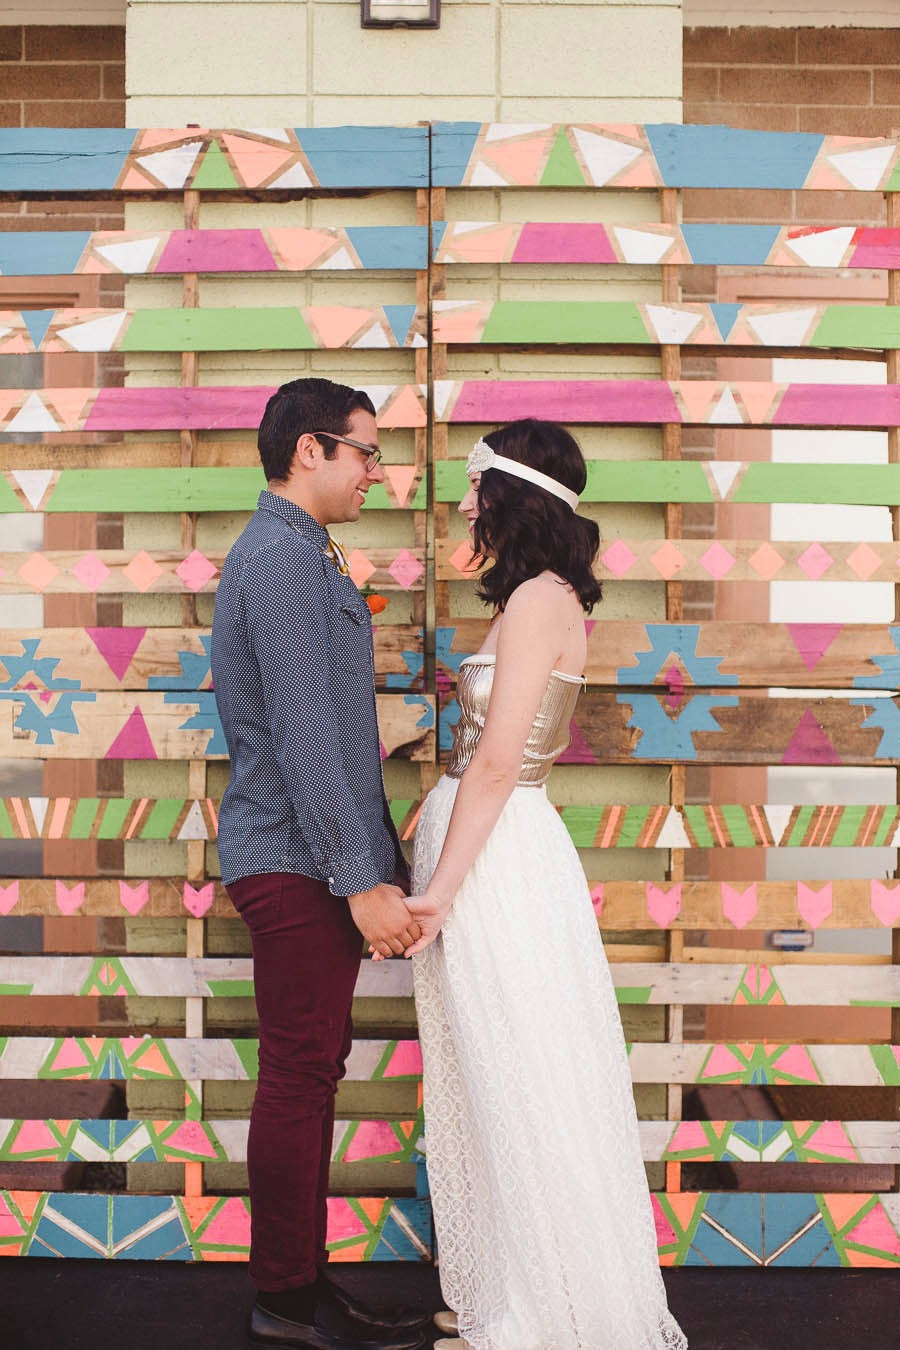 Diy photocall con palets y pintura de colores5